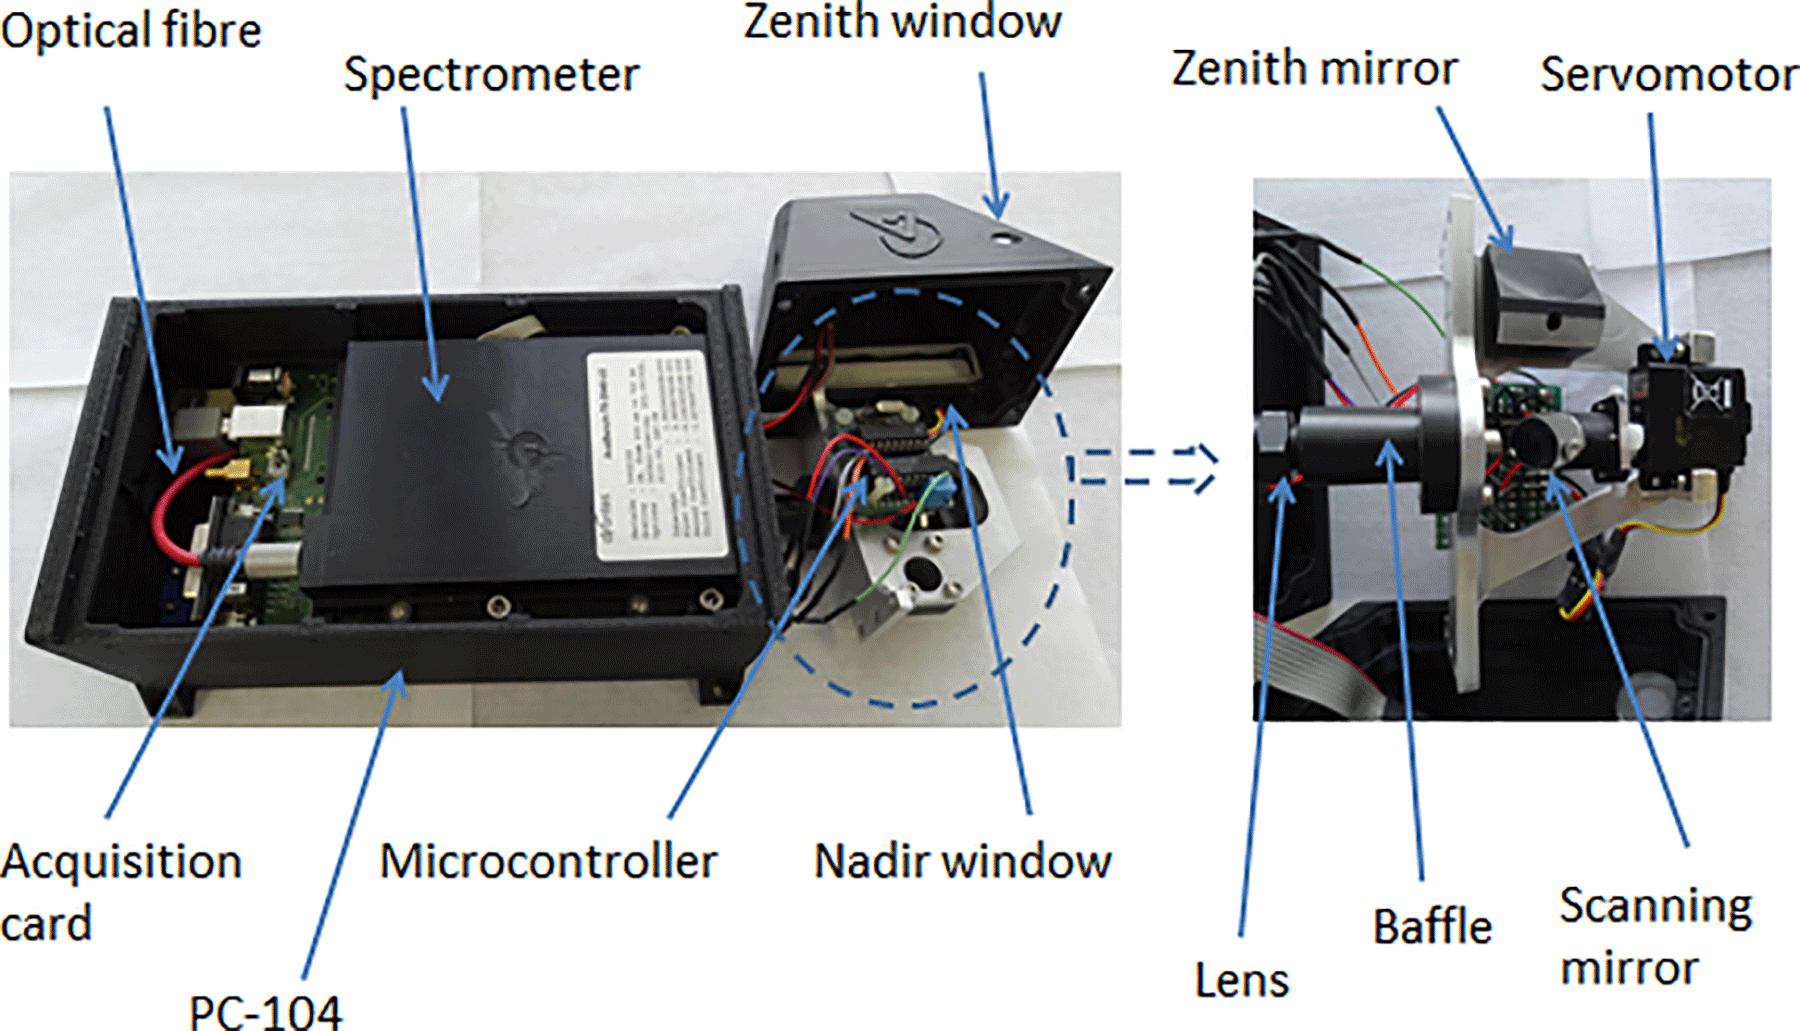 AMT - The Small Whiskbroom Imager for atmospheric compositioN